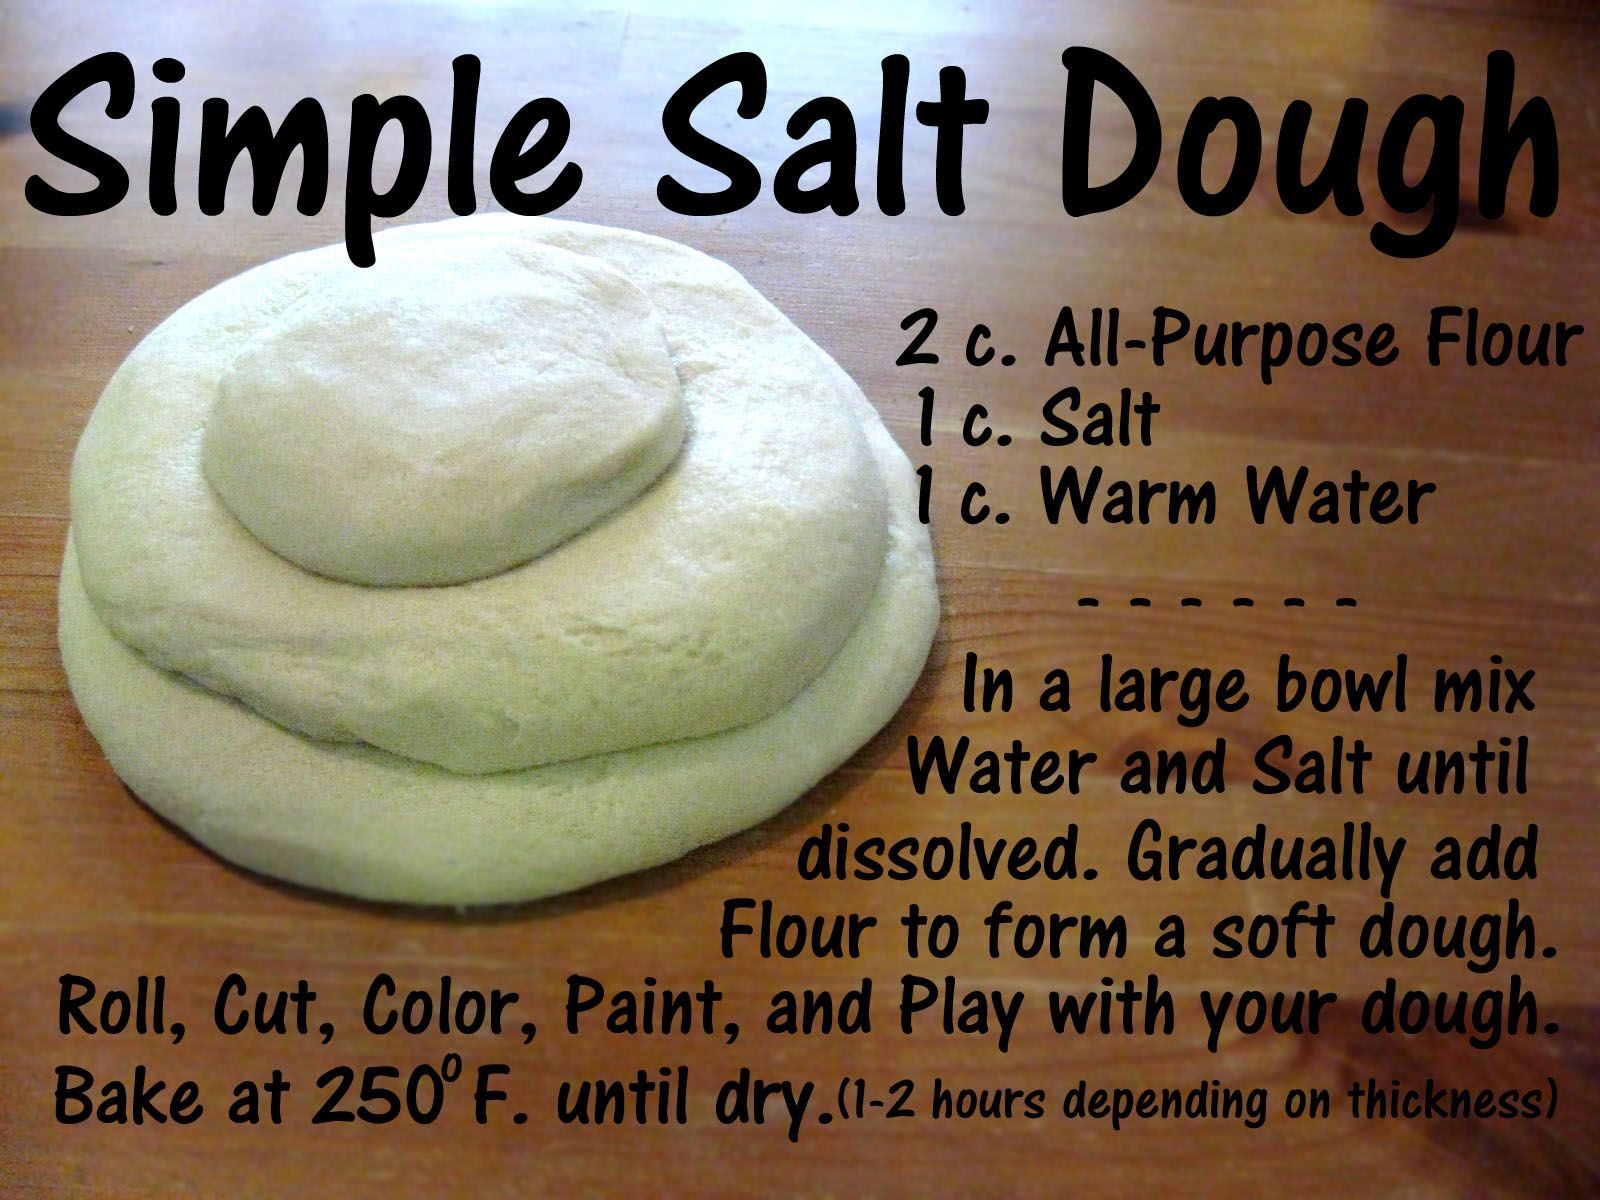 Simple Salt Dough